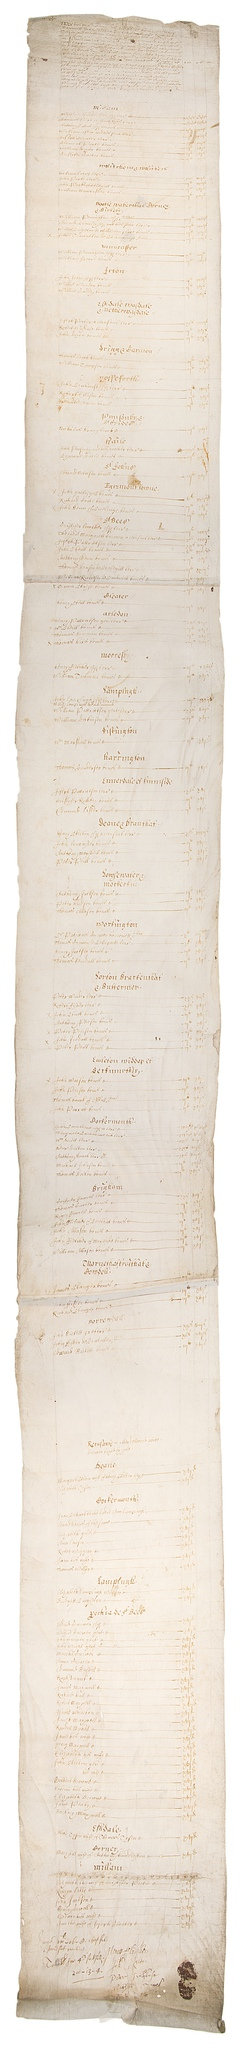 Cumberland.- Subsidy Roll, manuscript in English, on vellum, some marks, c. 2040 x 220mm., 15th April1641.